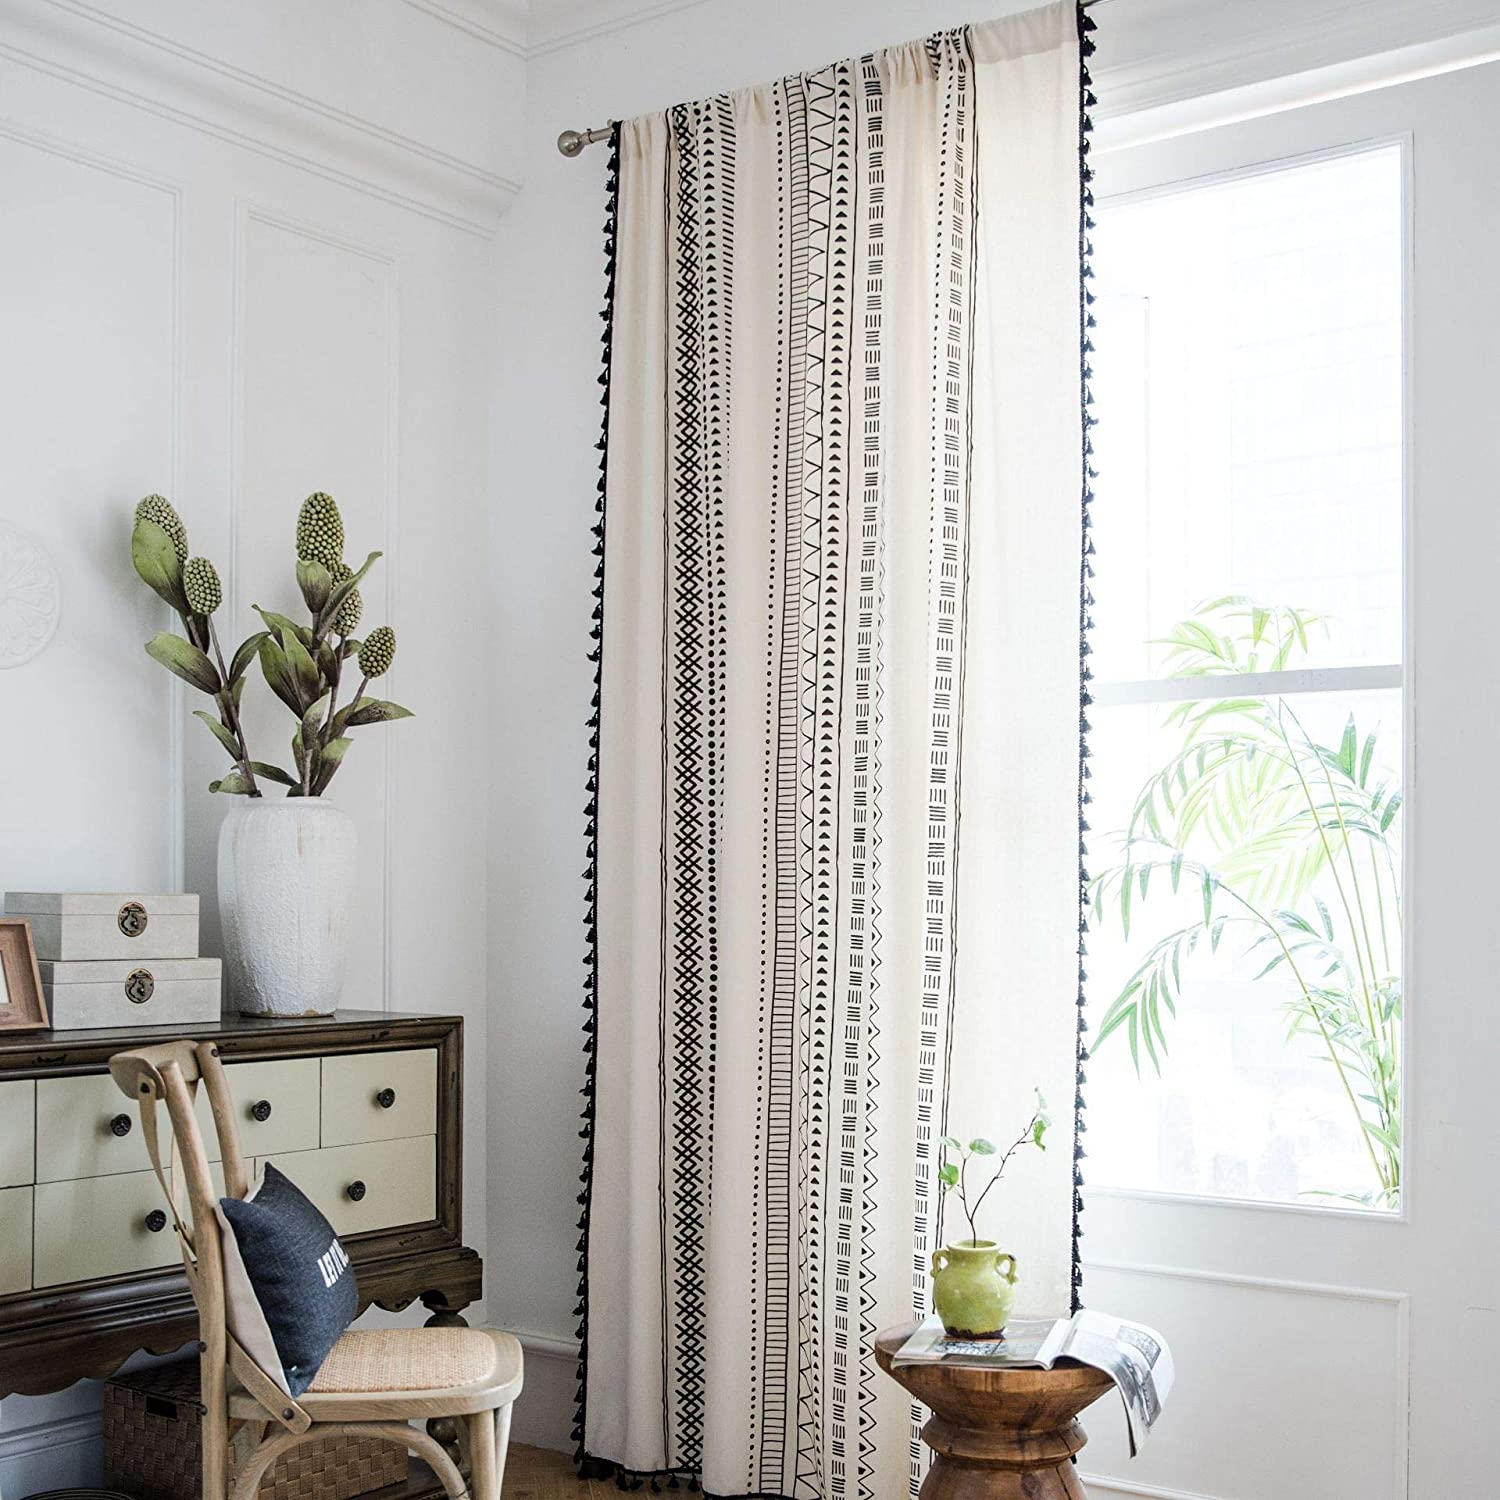 "SUCSES Boho Window Curtains with Tassels, Cotton Linen Farmhouse Bohemian Curtain for Living Room Bedroom, Geometric Printed Country Style Drapes, 1 Piece, 59"" x 71"""